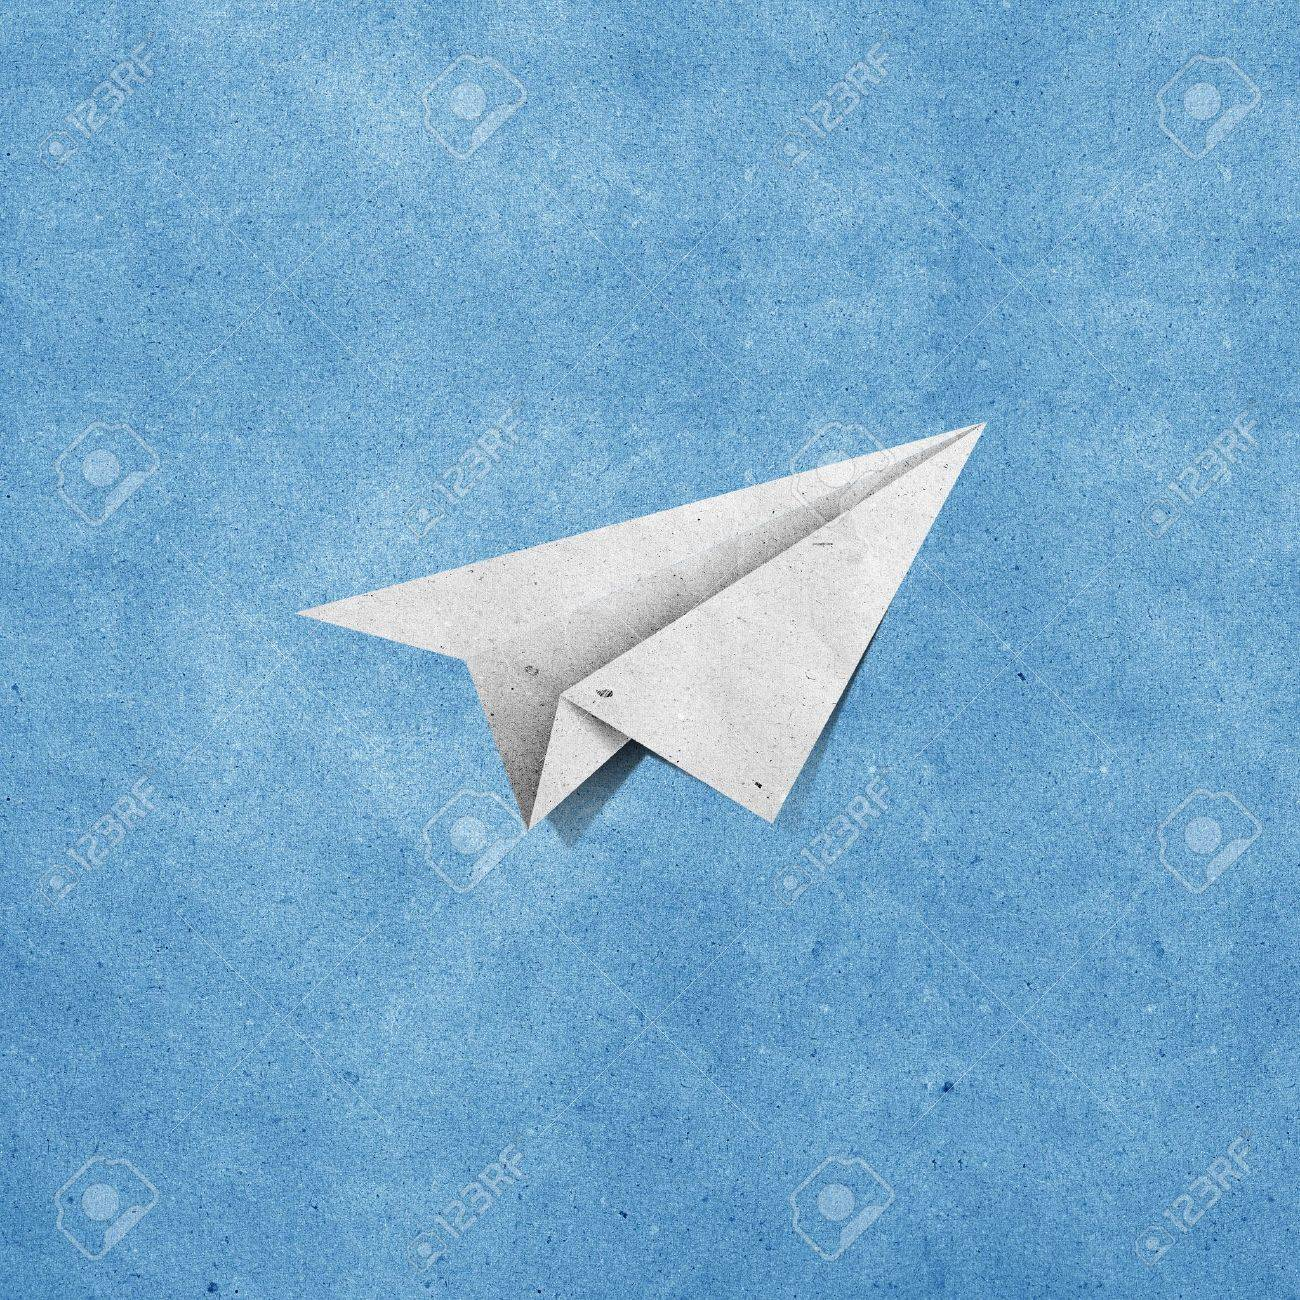 aircraft recycled paper on grunge blue sky paper background Stock Photo - 9971740